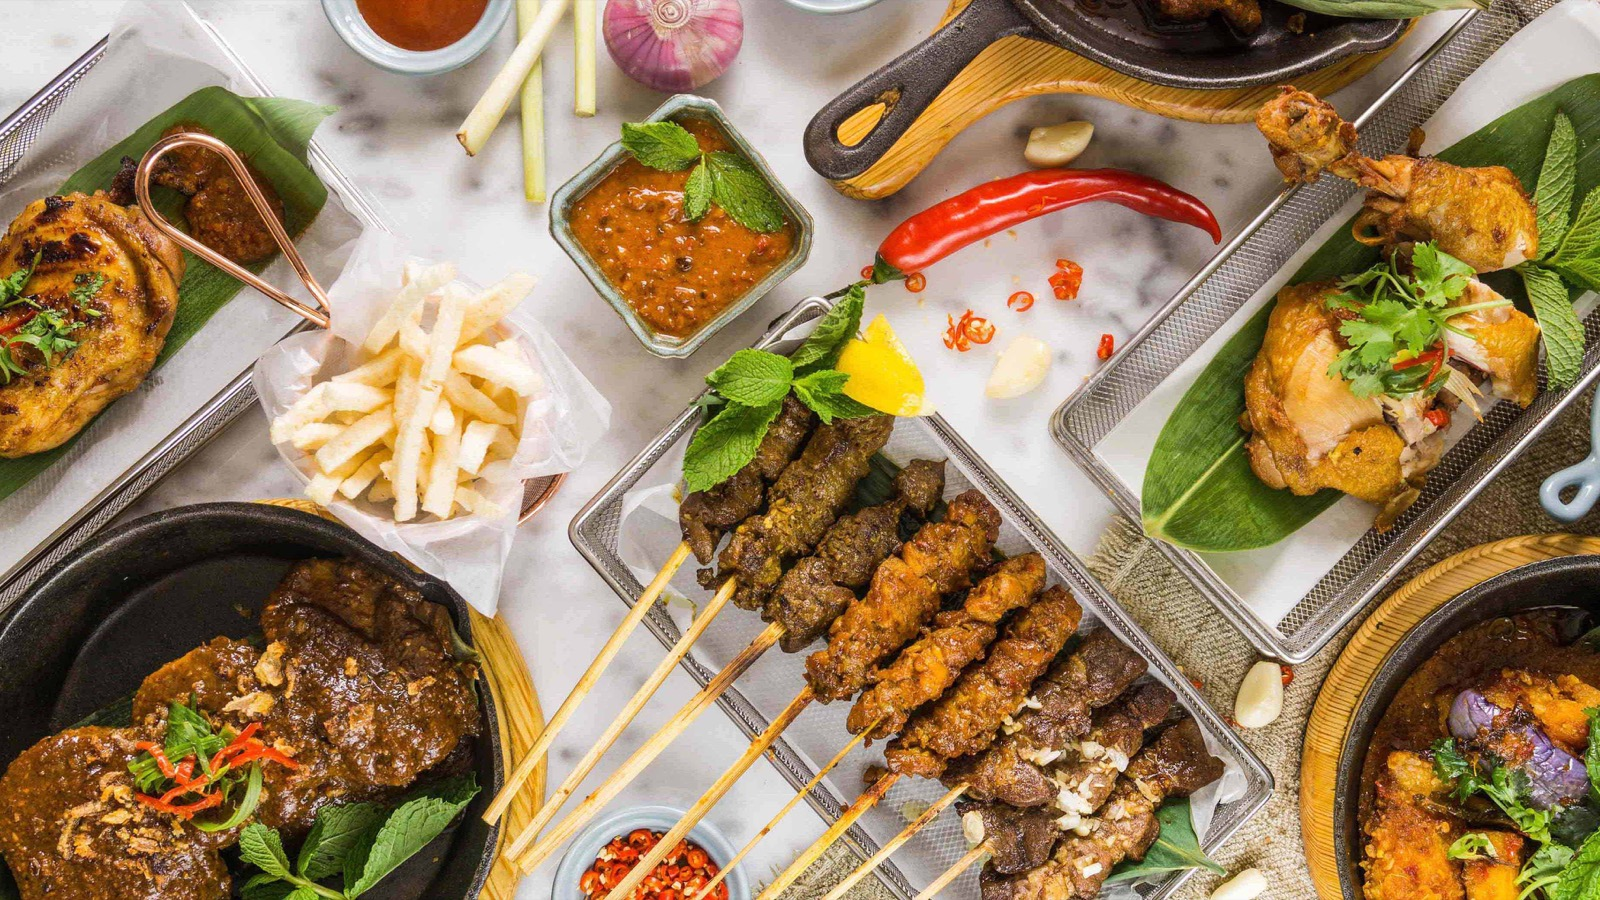 GT and Foodpanda: From Here to Your Place